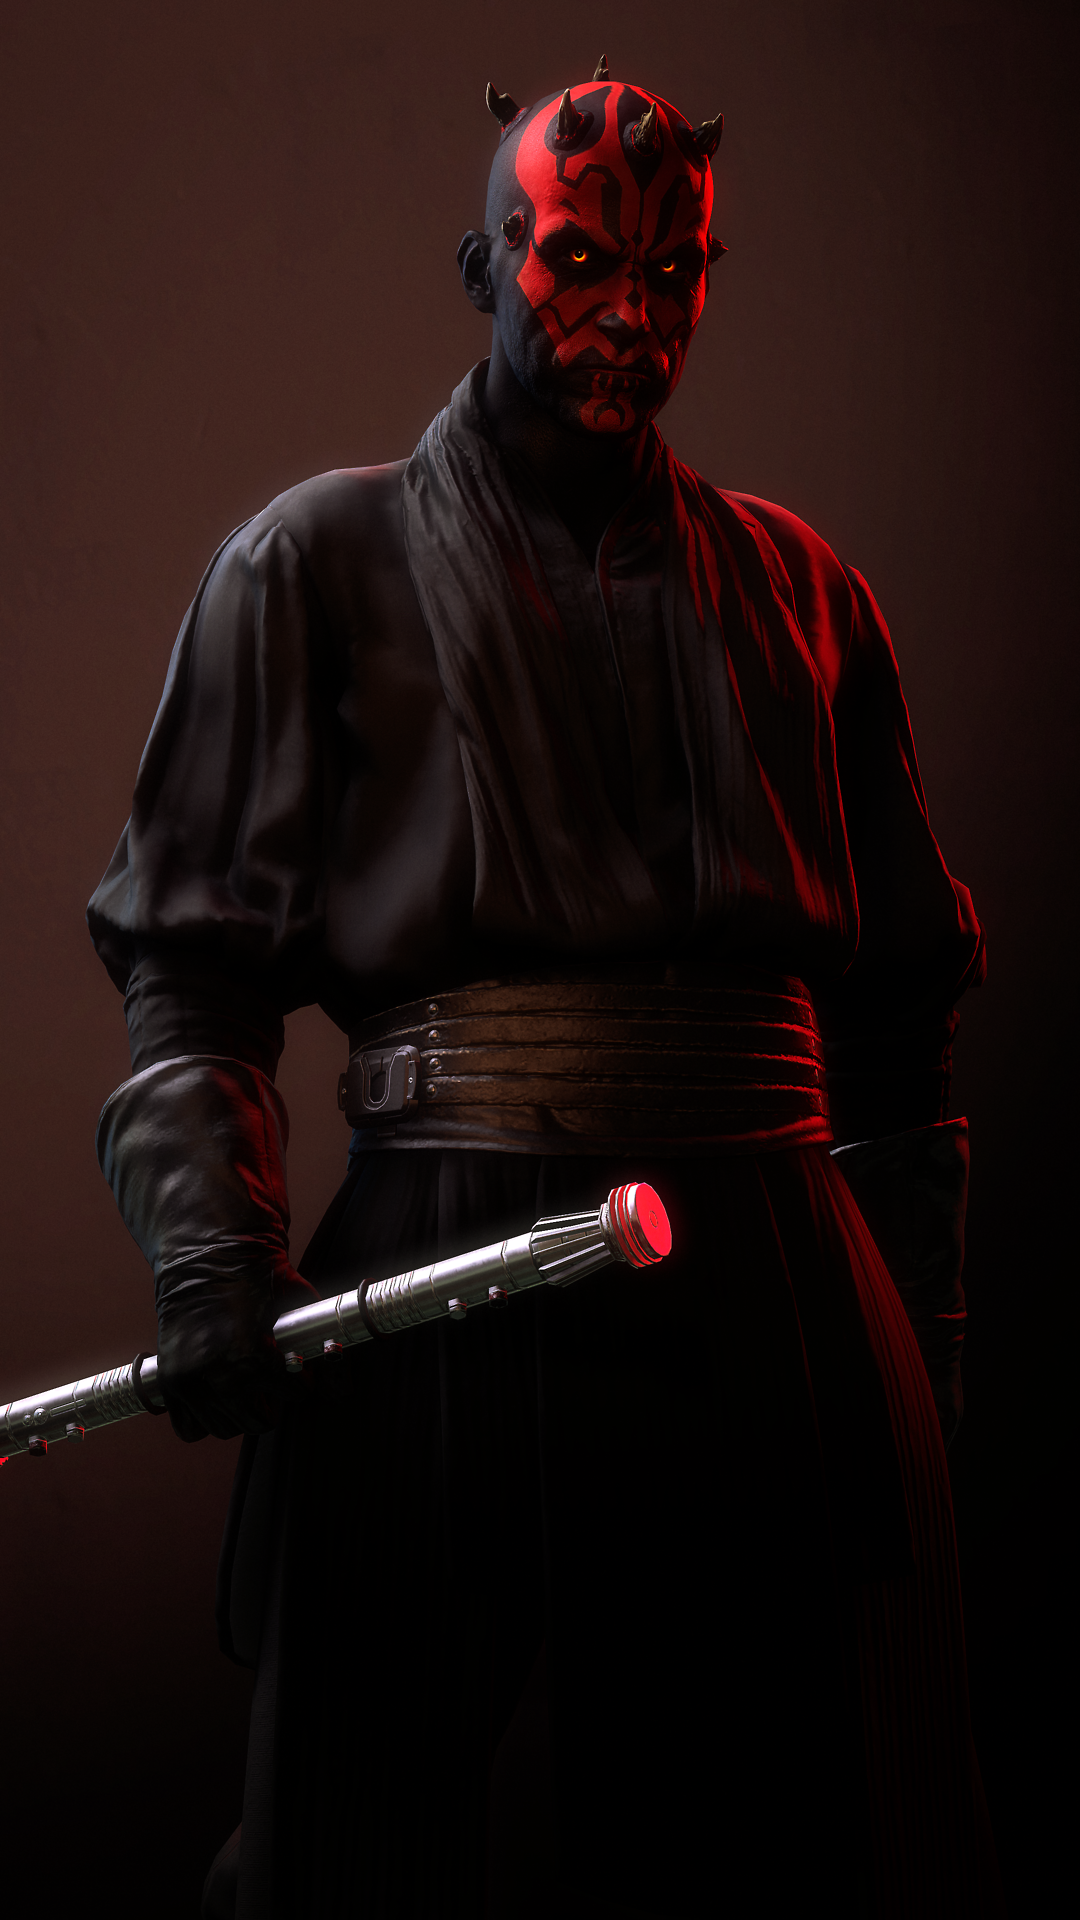 Angryrabbitgmod Darth Maul Source Filmmaker At The Moment I Star Wars Pictures Star Wars Background Star Wars Images